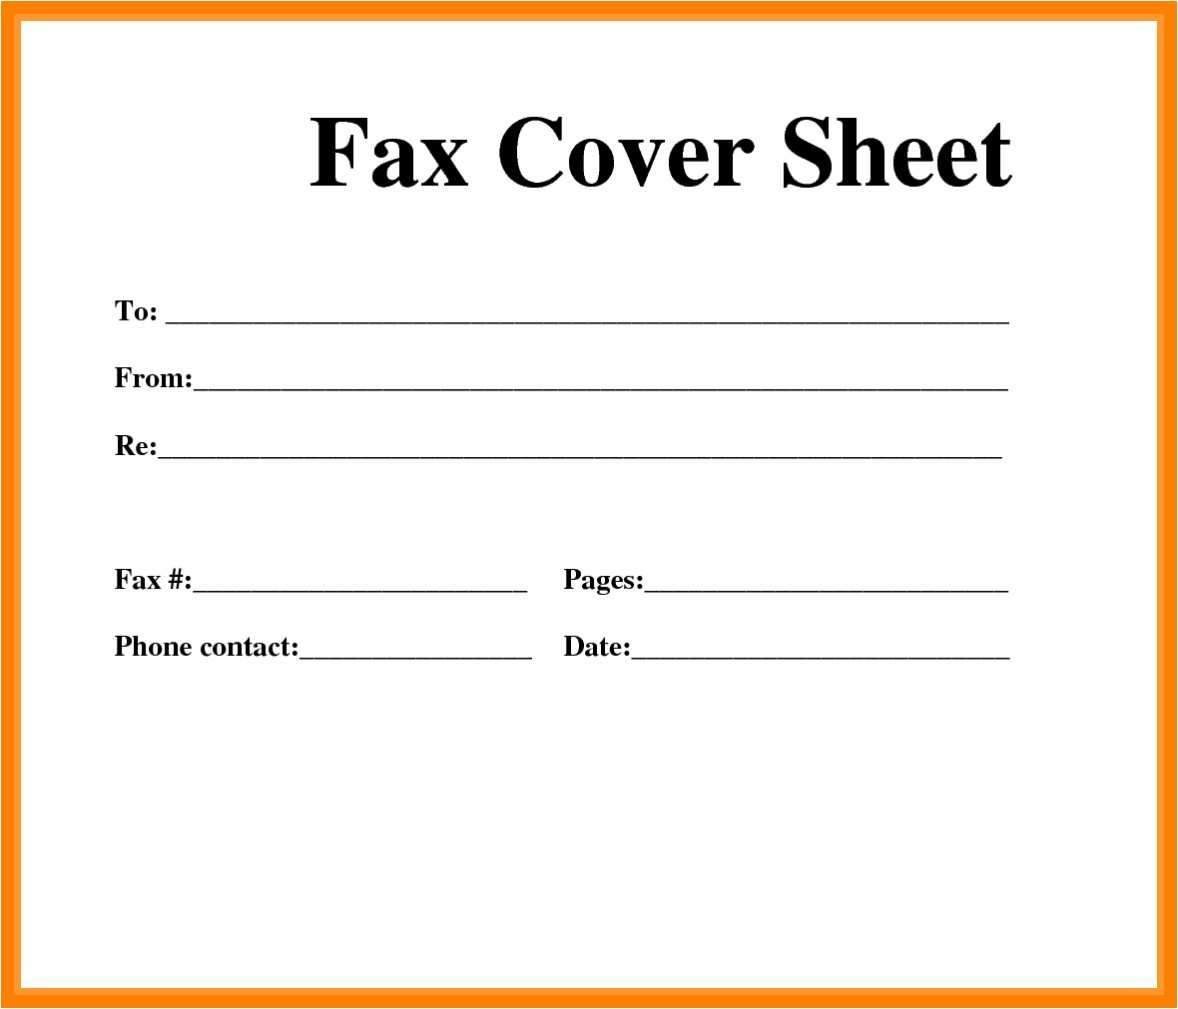 53 Fresh Fax Cover Sheet Template Word 2013 - All About Resume - Free Printable Fax Cover Sheet